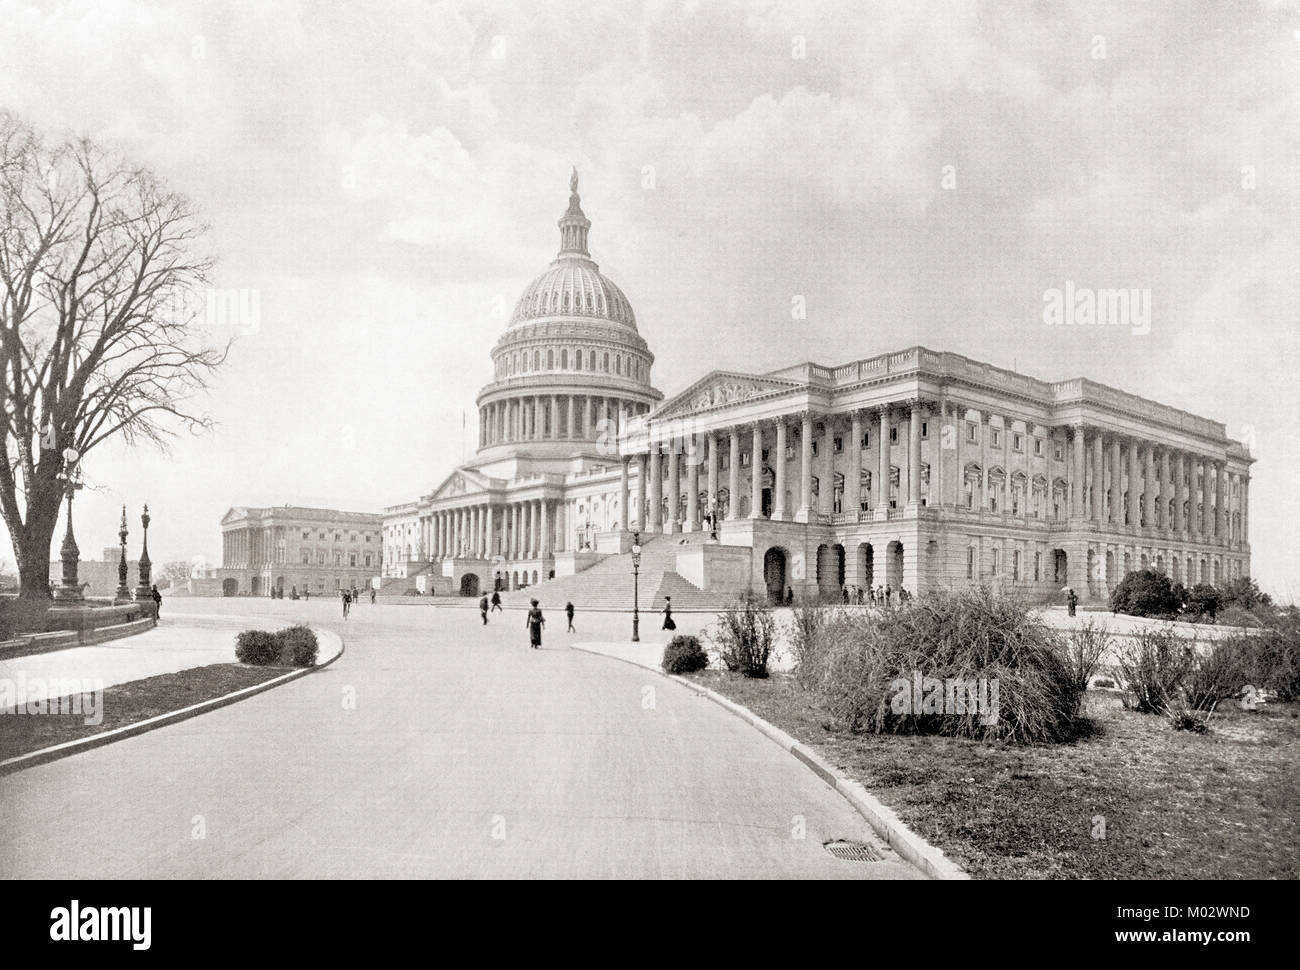 The United States Capitol, aka Capitol Building, Washington D.C., United States of America, seen here c.1911.  From - Stock Image